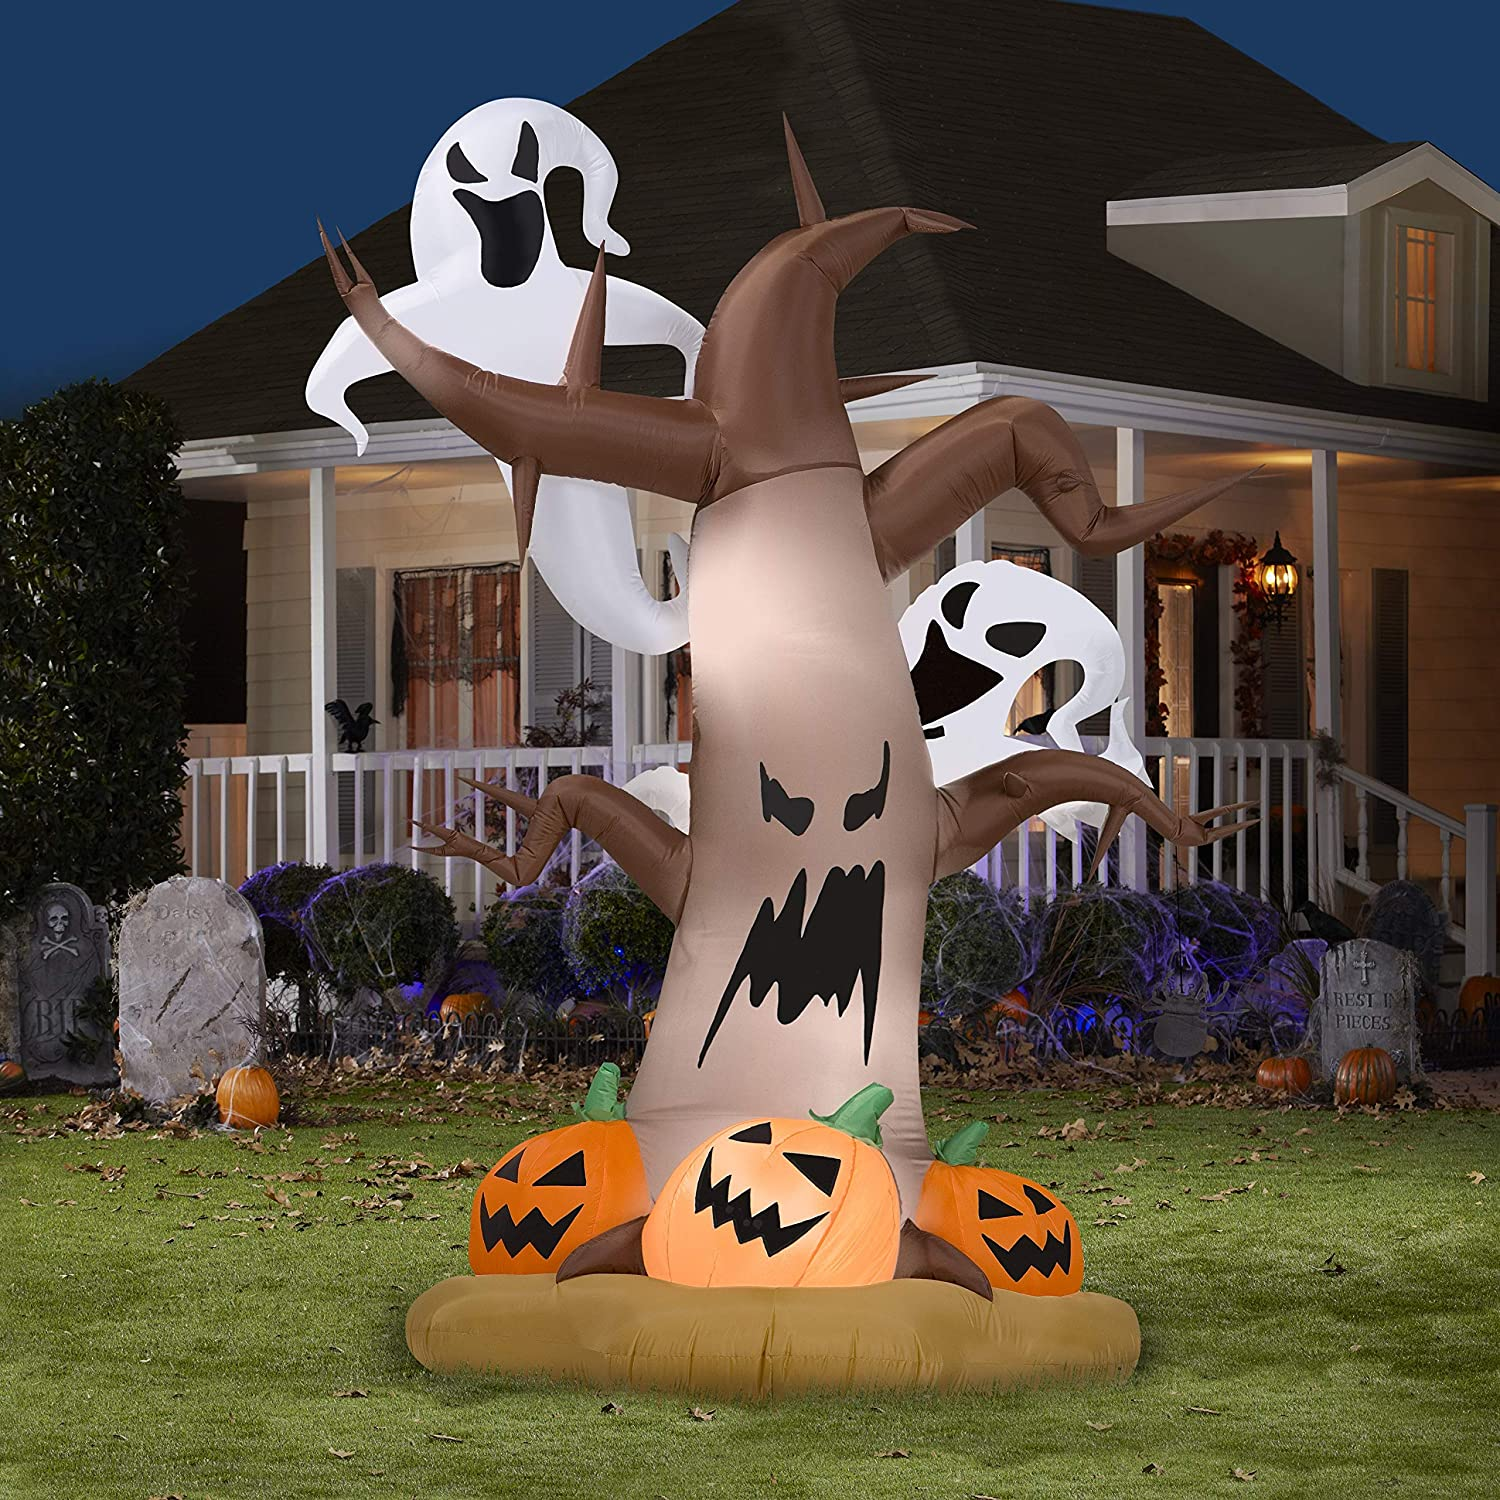 Halloween Decorations 8 Tall Airblown Halloween Inflatable Dead Tree with Ghost on Top pumpkins on Bottom